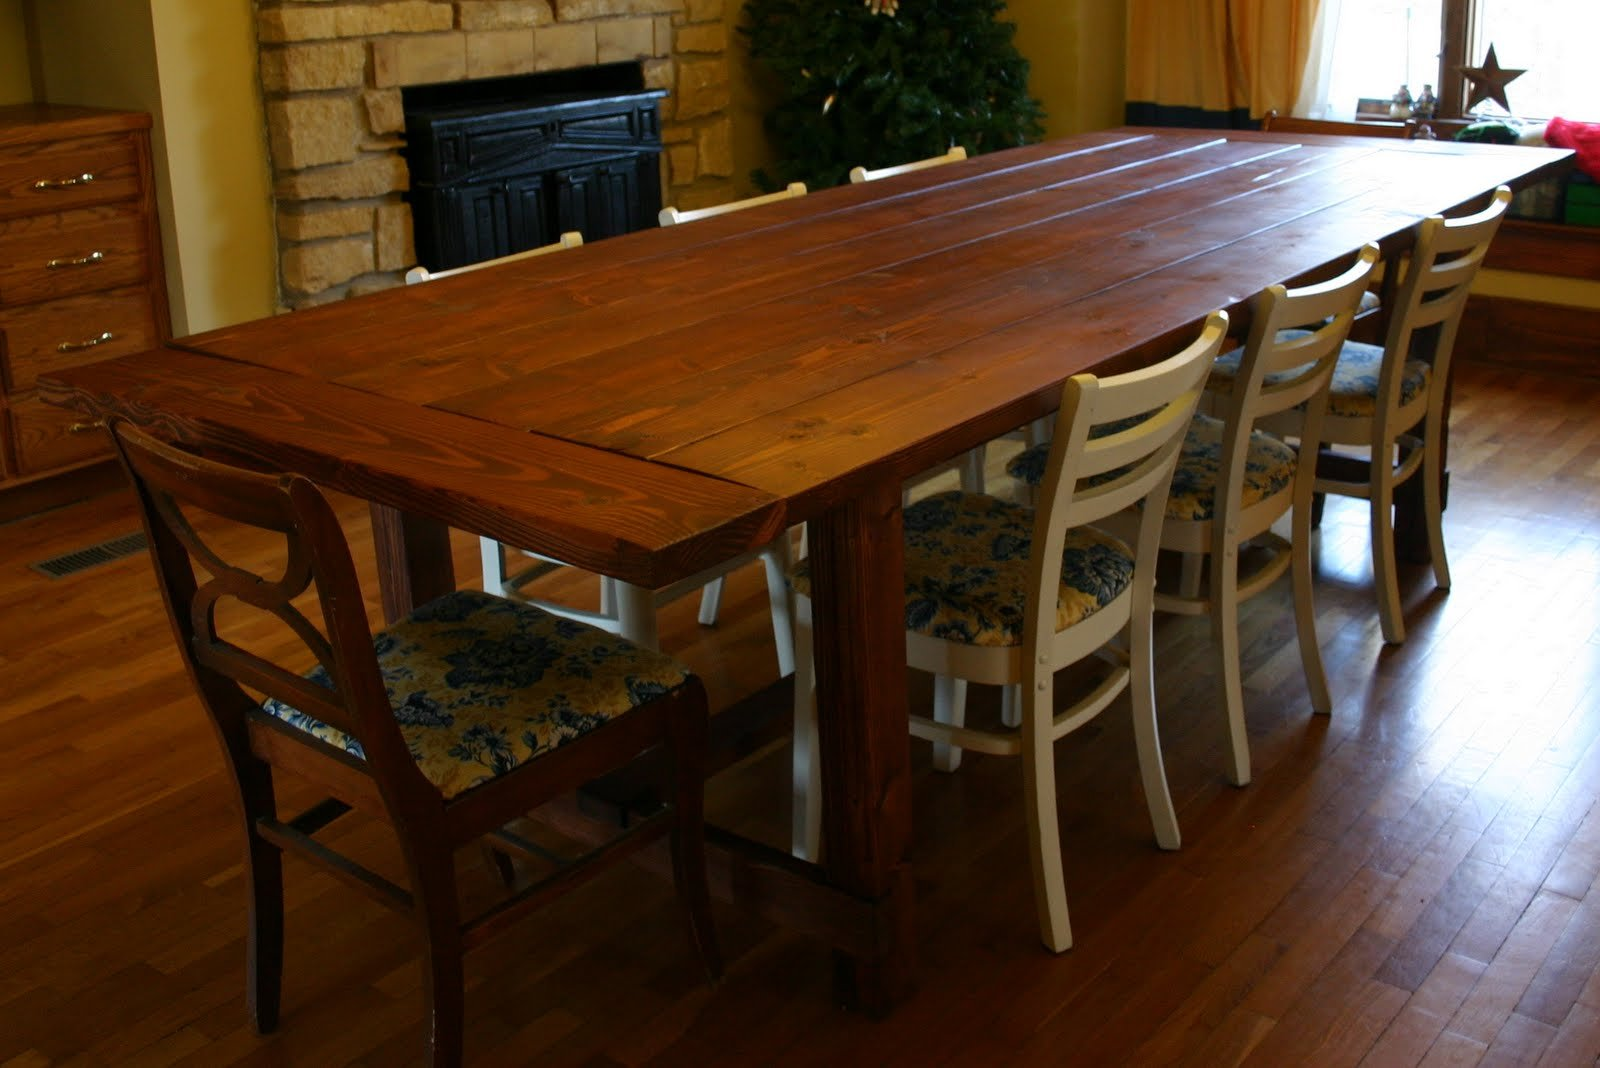 German jello salad rustic dining table i built from free Diy farmhouse table